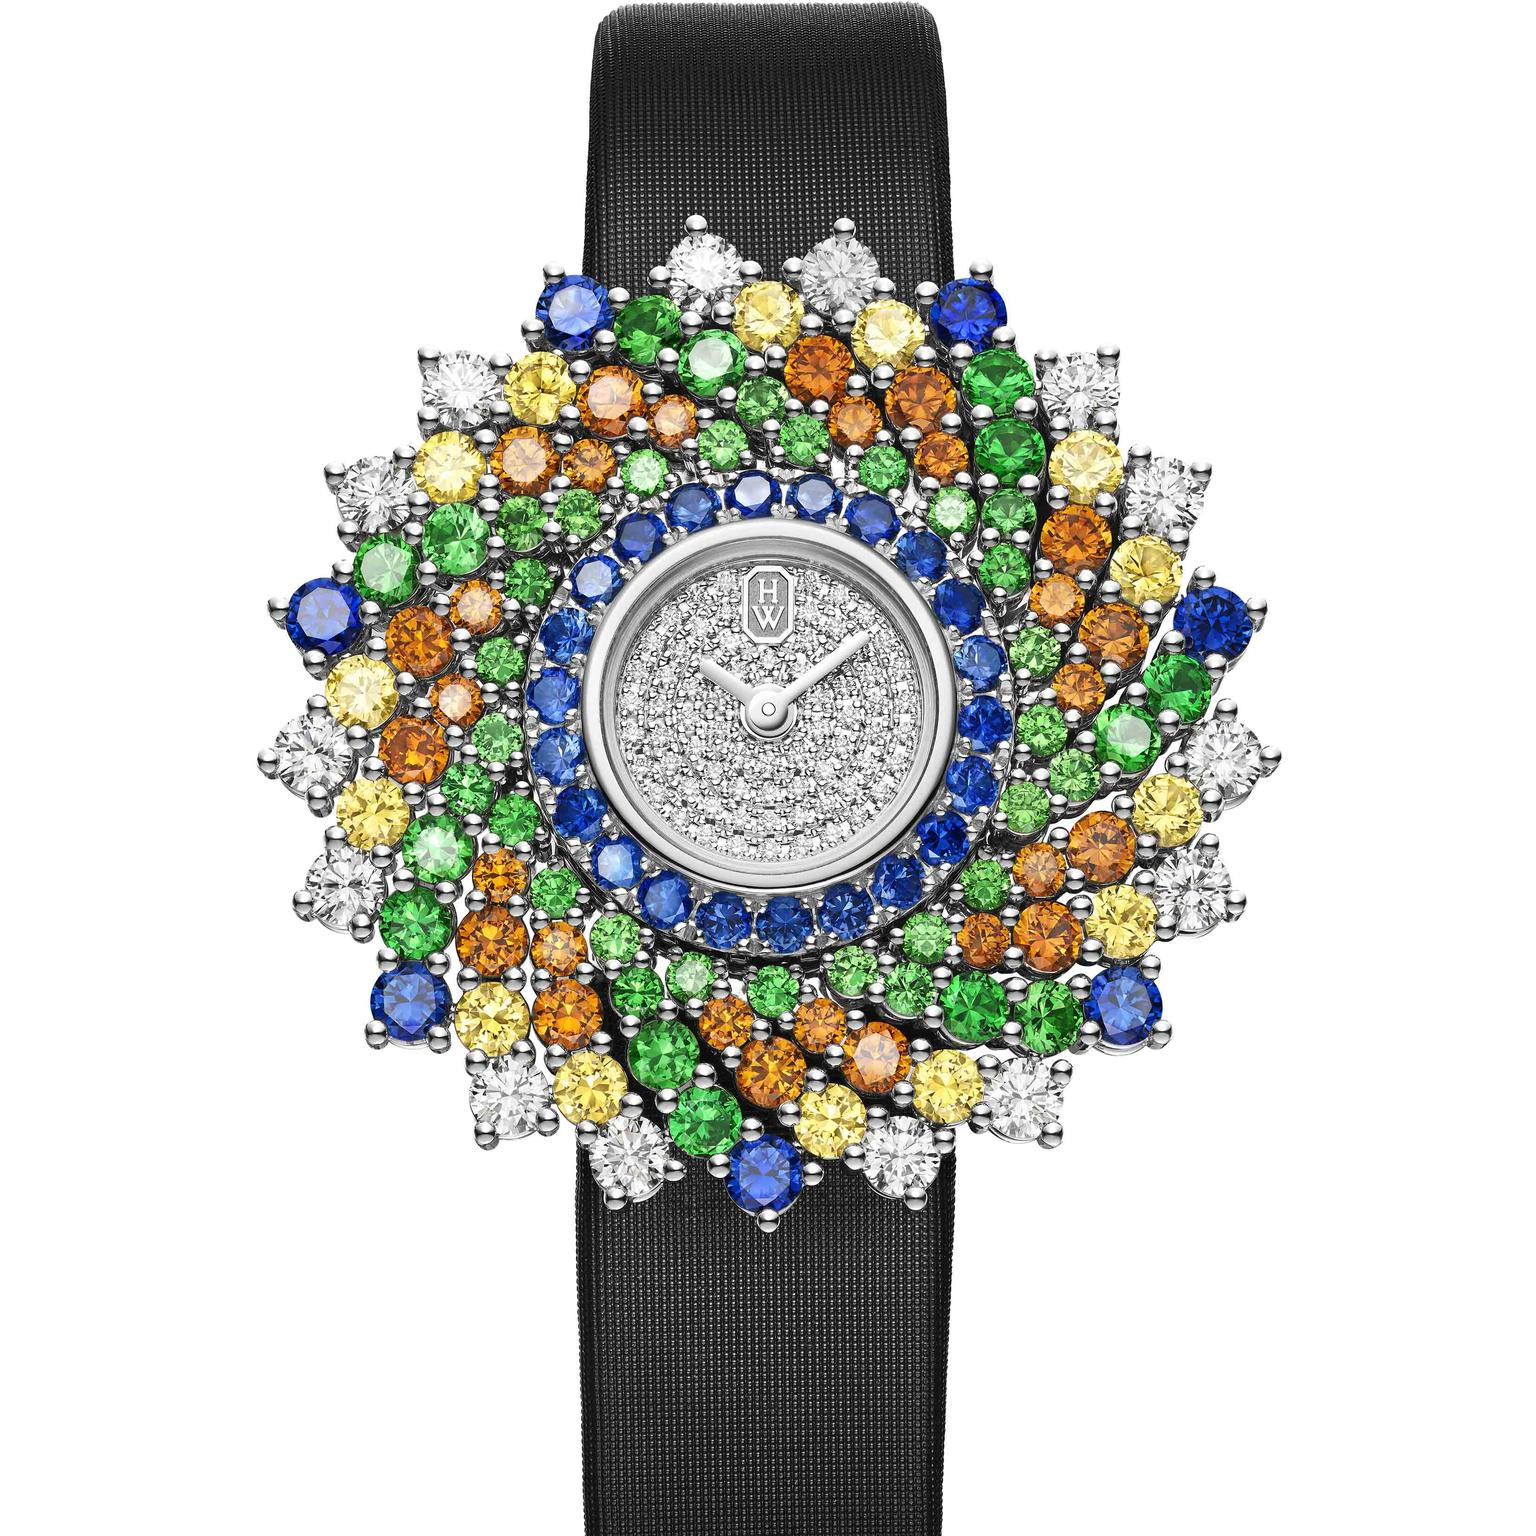 Harry Winston Kaleidoscope watch